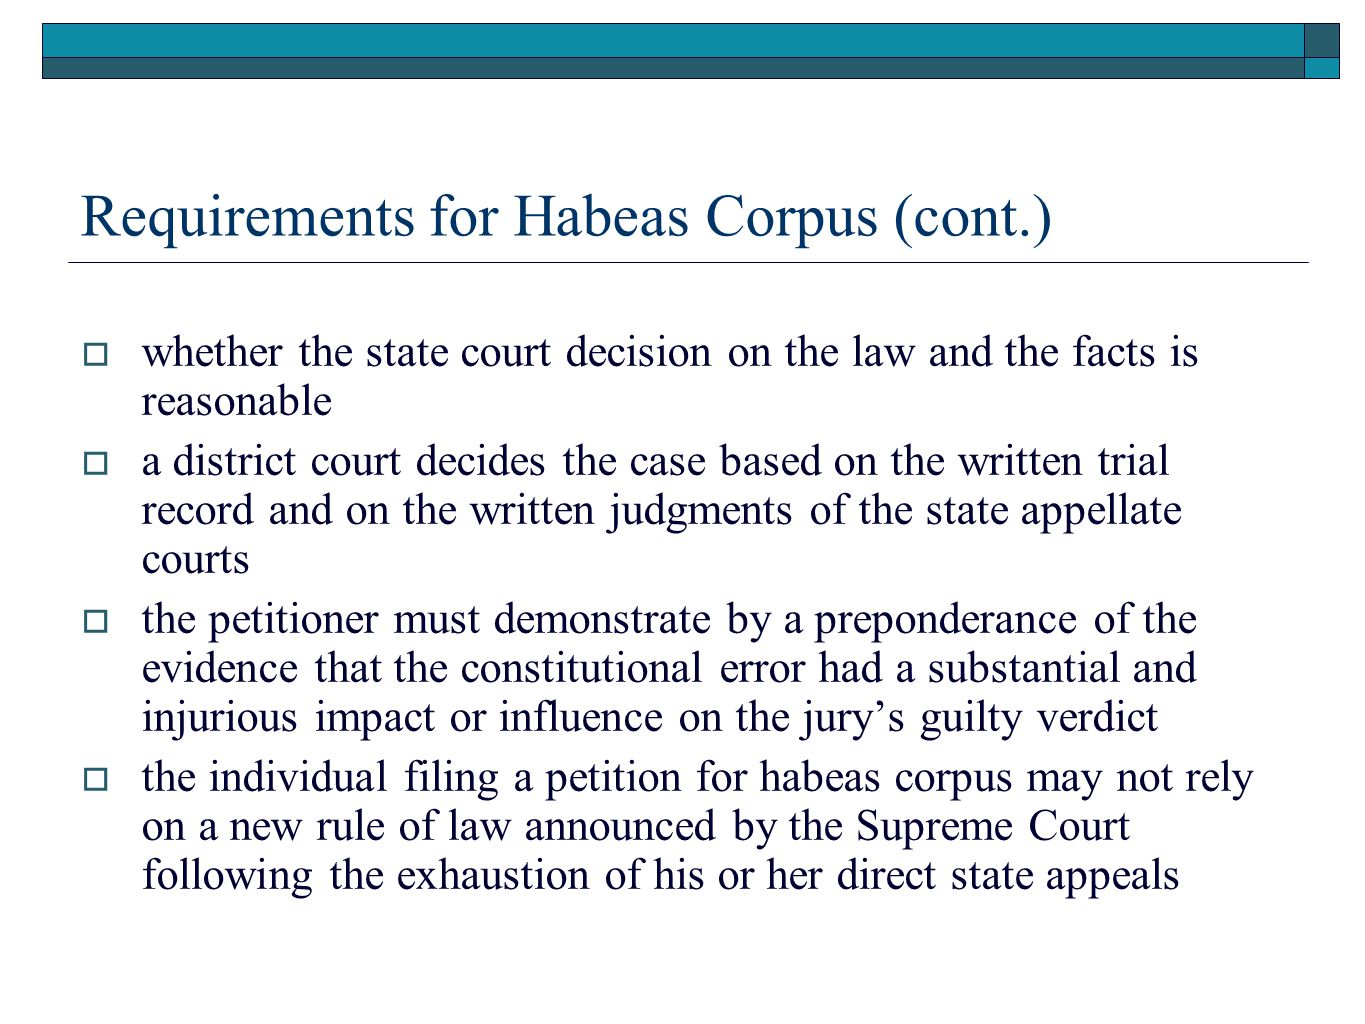 Requirements for Habeas Corpus (cont.)  whether the state court decision on the law and the facts is reasonable  a district court decides the case based on the written trial record and on the written judgments of the state appellate courts  the petitioner must demonstrate by a preponderance of the evidence that the constitutional error had a substantial and injurious impact or influence on the jury's guilty verdict  the individual filing a petition for habeas corpus may not rely on a new rule of law announced by the Supreme Court following the exhaustion of his or her direct state appeals